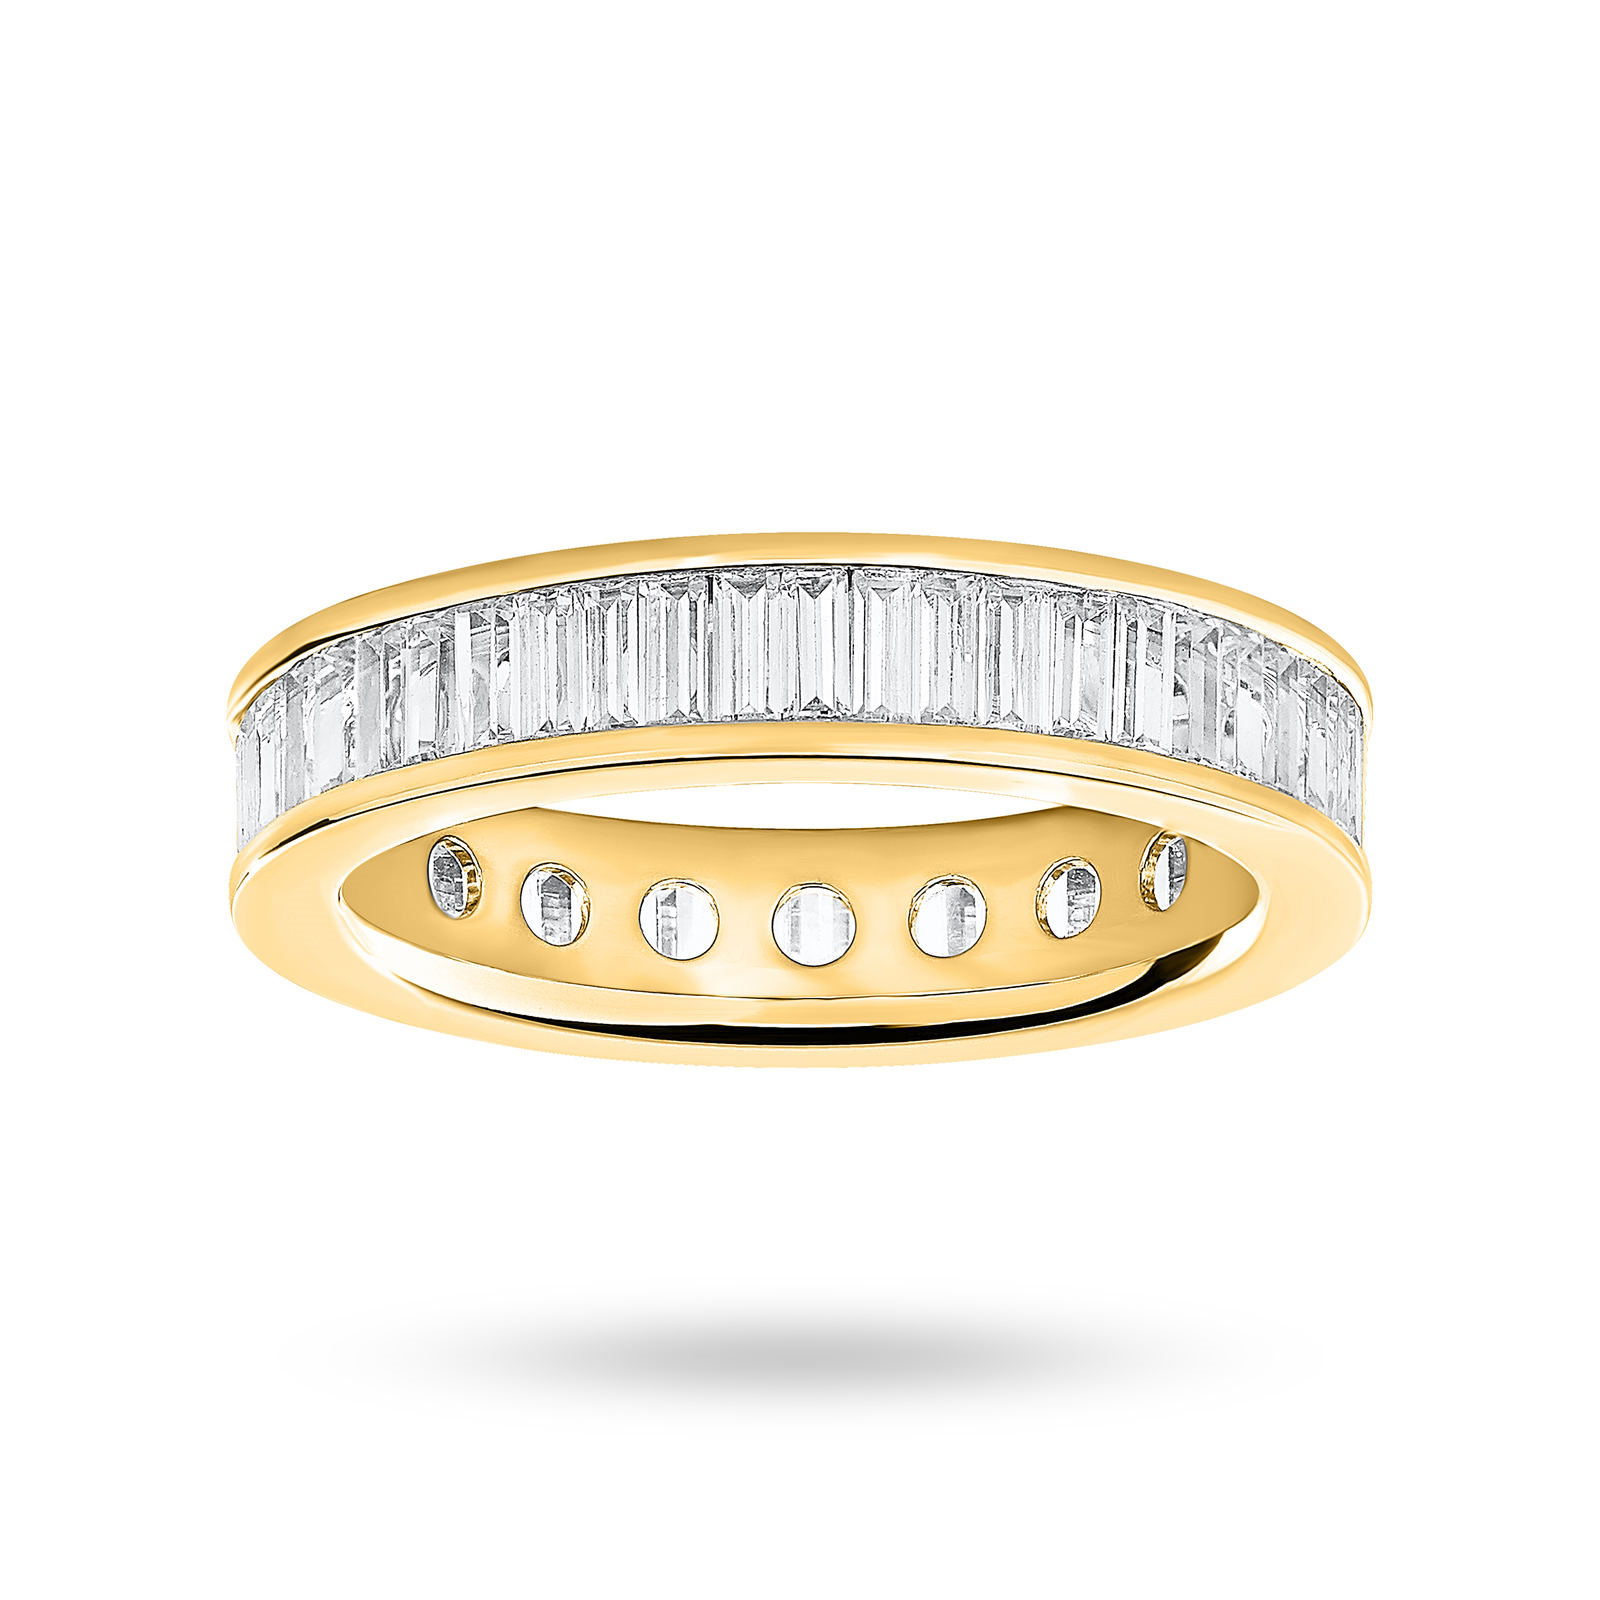 9ct Yellow Gold 2.00ct Baguette Cut Full Eternity Ring - Ring Size N